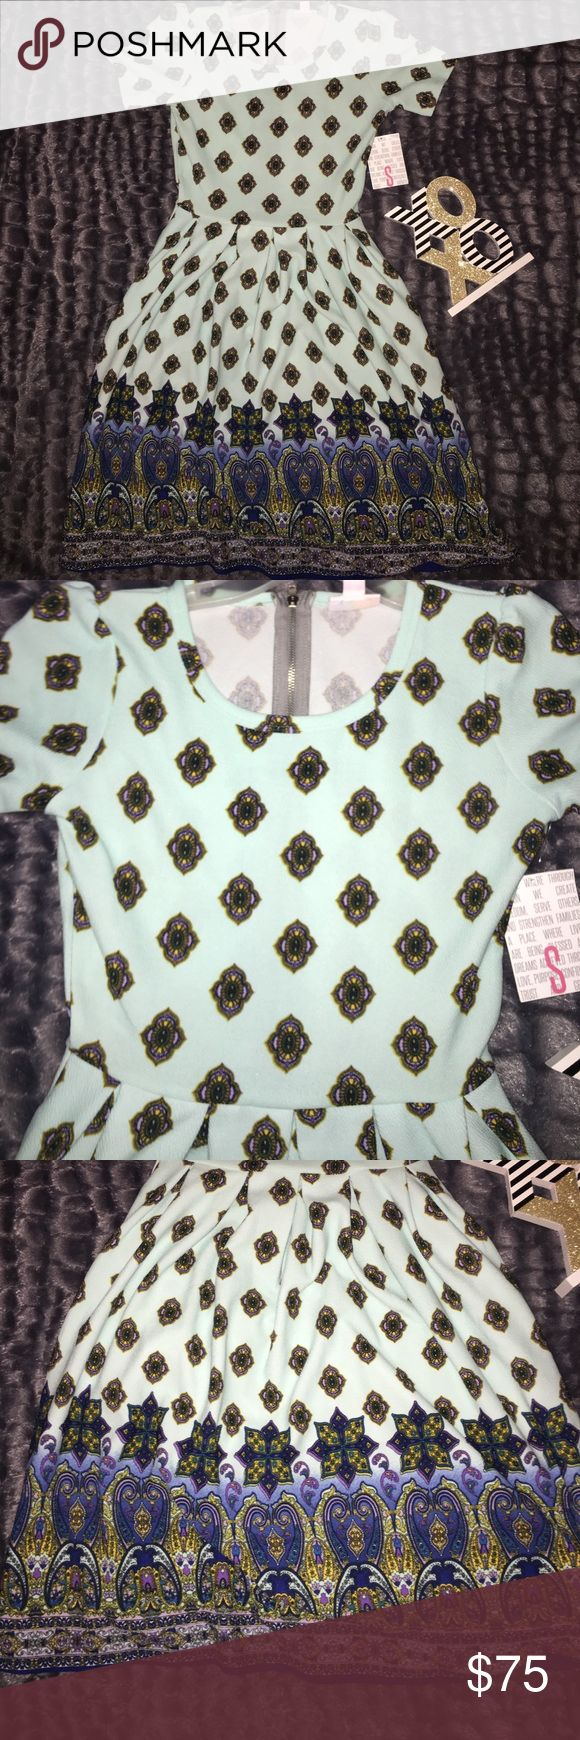 Lularoe Amelia dipped unicorn print This gorgeous Lularoe Amelia is size small new with tags. Dipped unicorn print, with mint blue/green background and elegant dipped pattern at the bottom. Zip up from the back. LuLaRoe Dresses